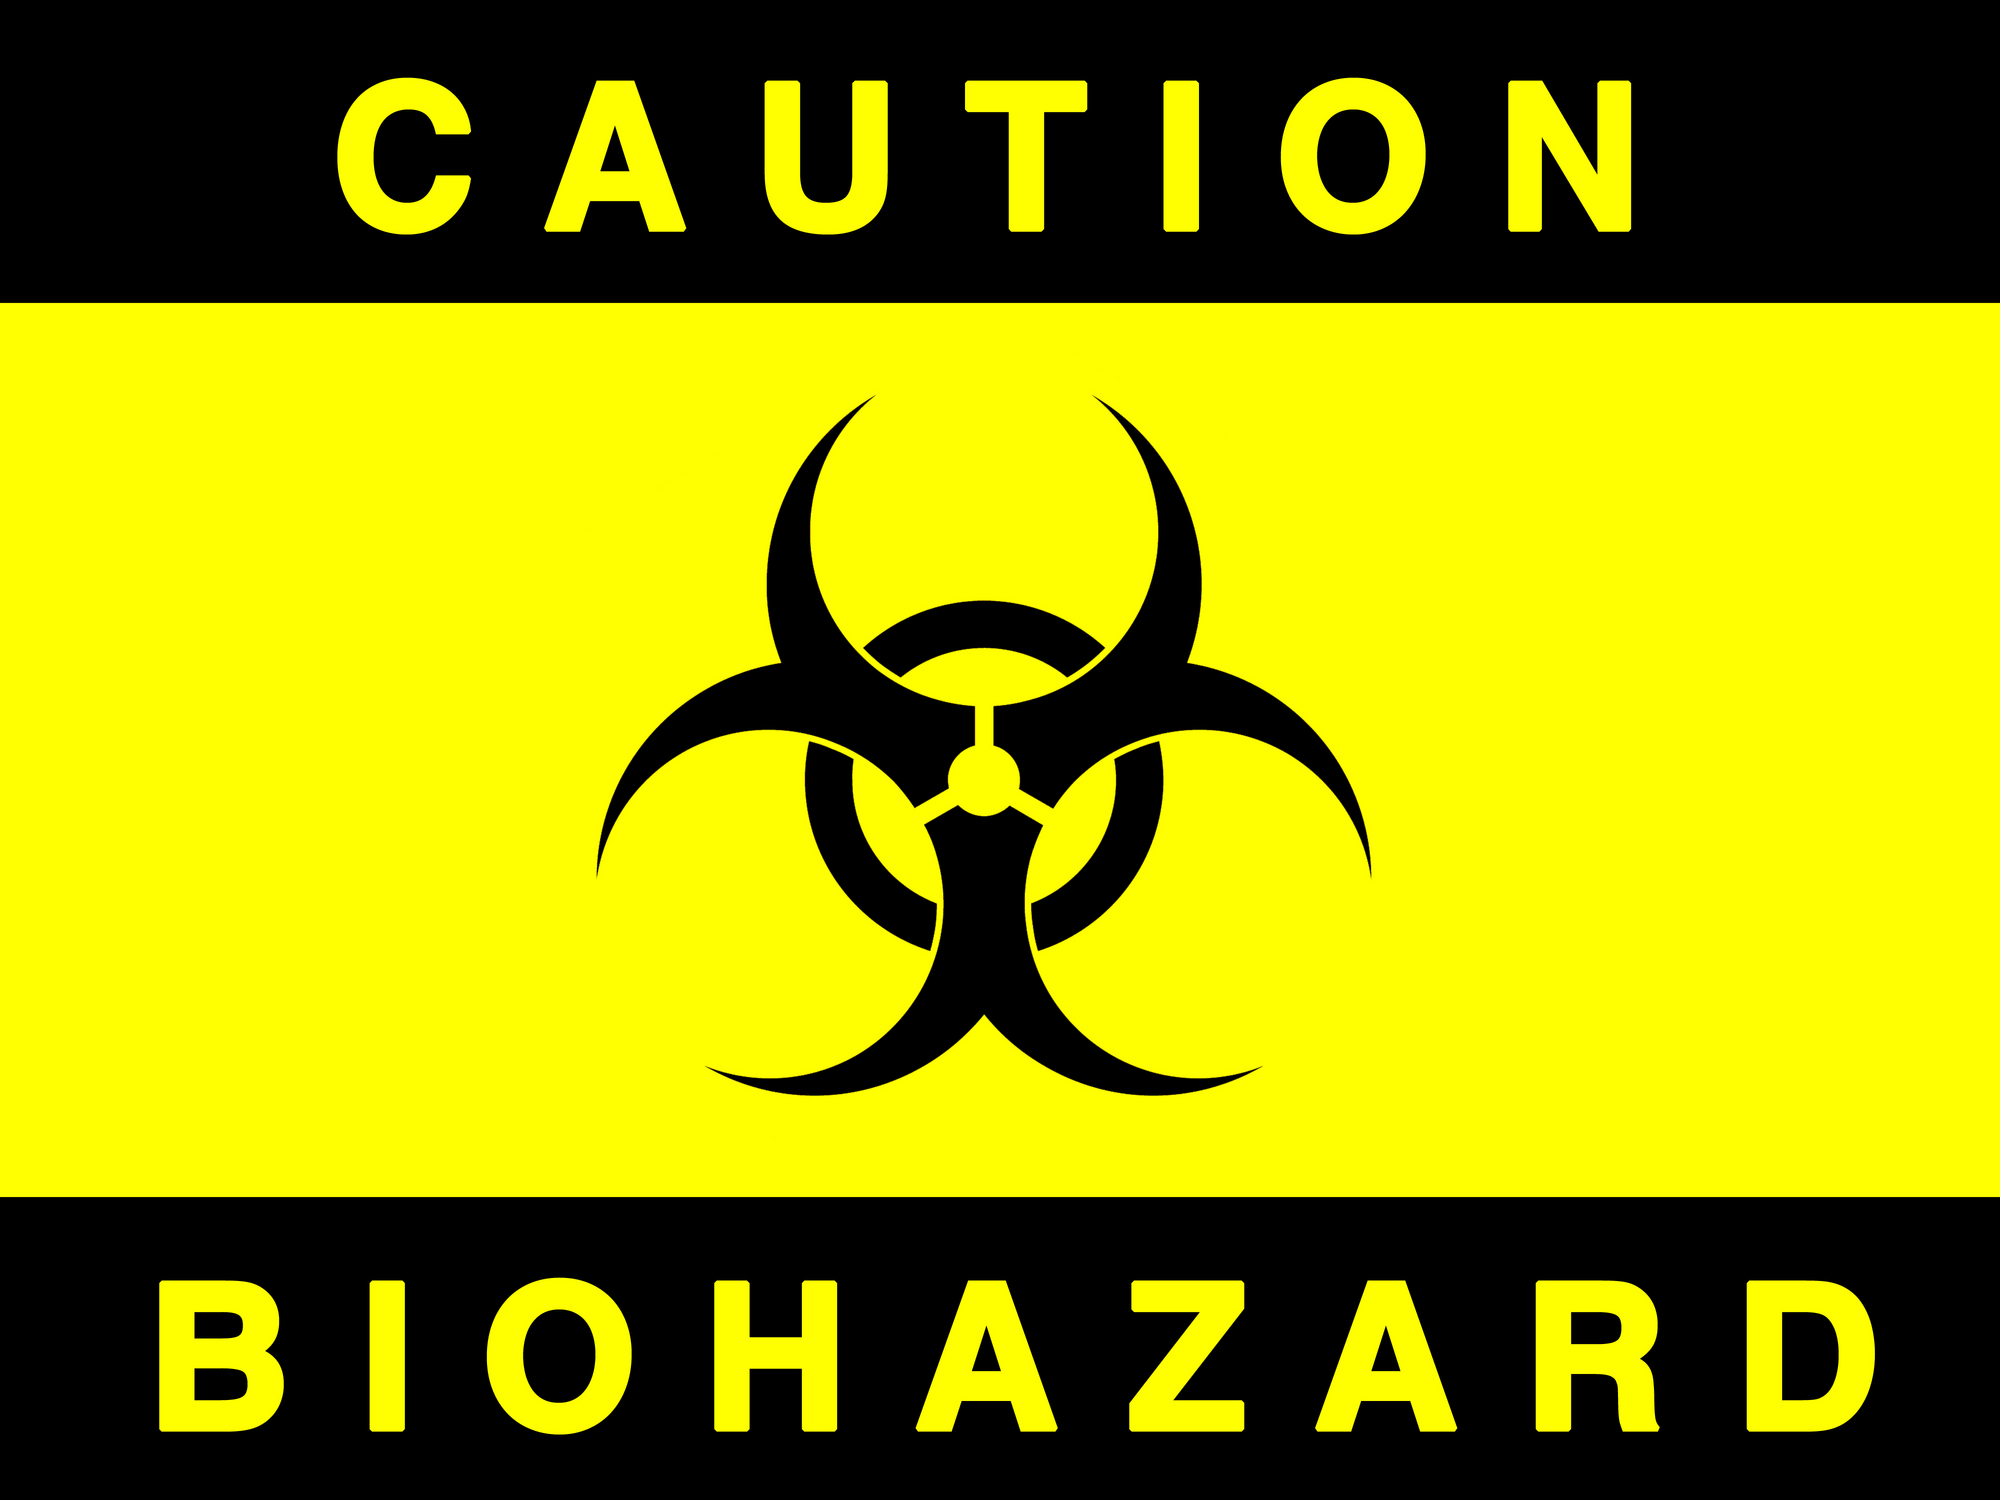 2000x1500 Biohazard Clipart Awesome